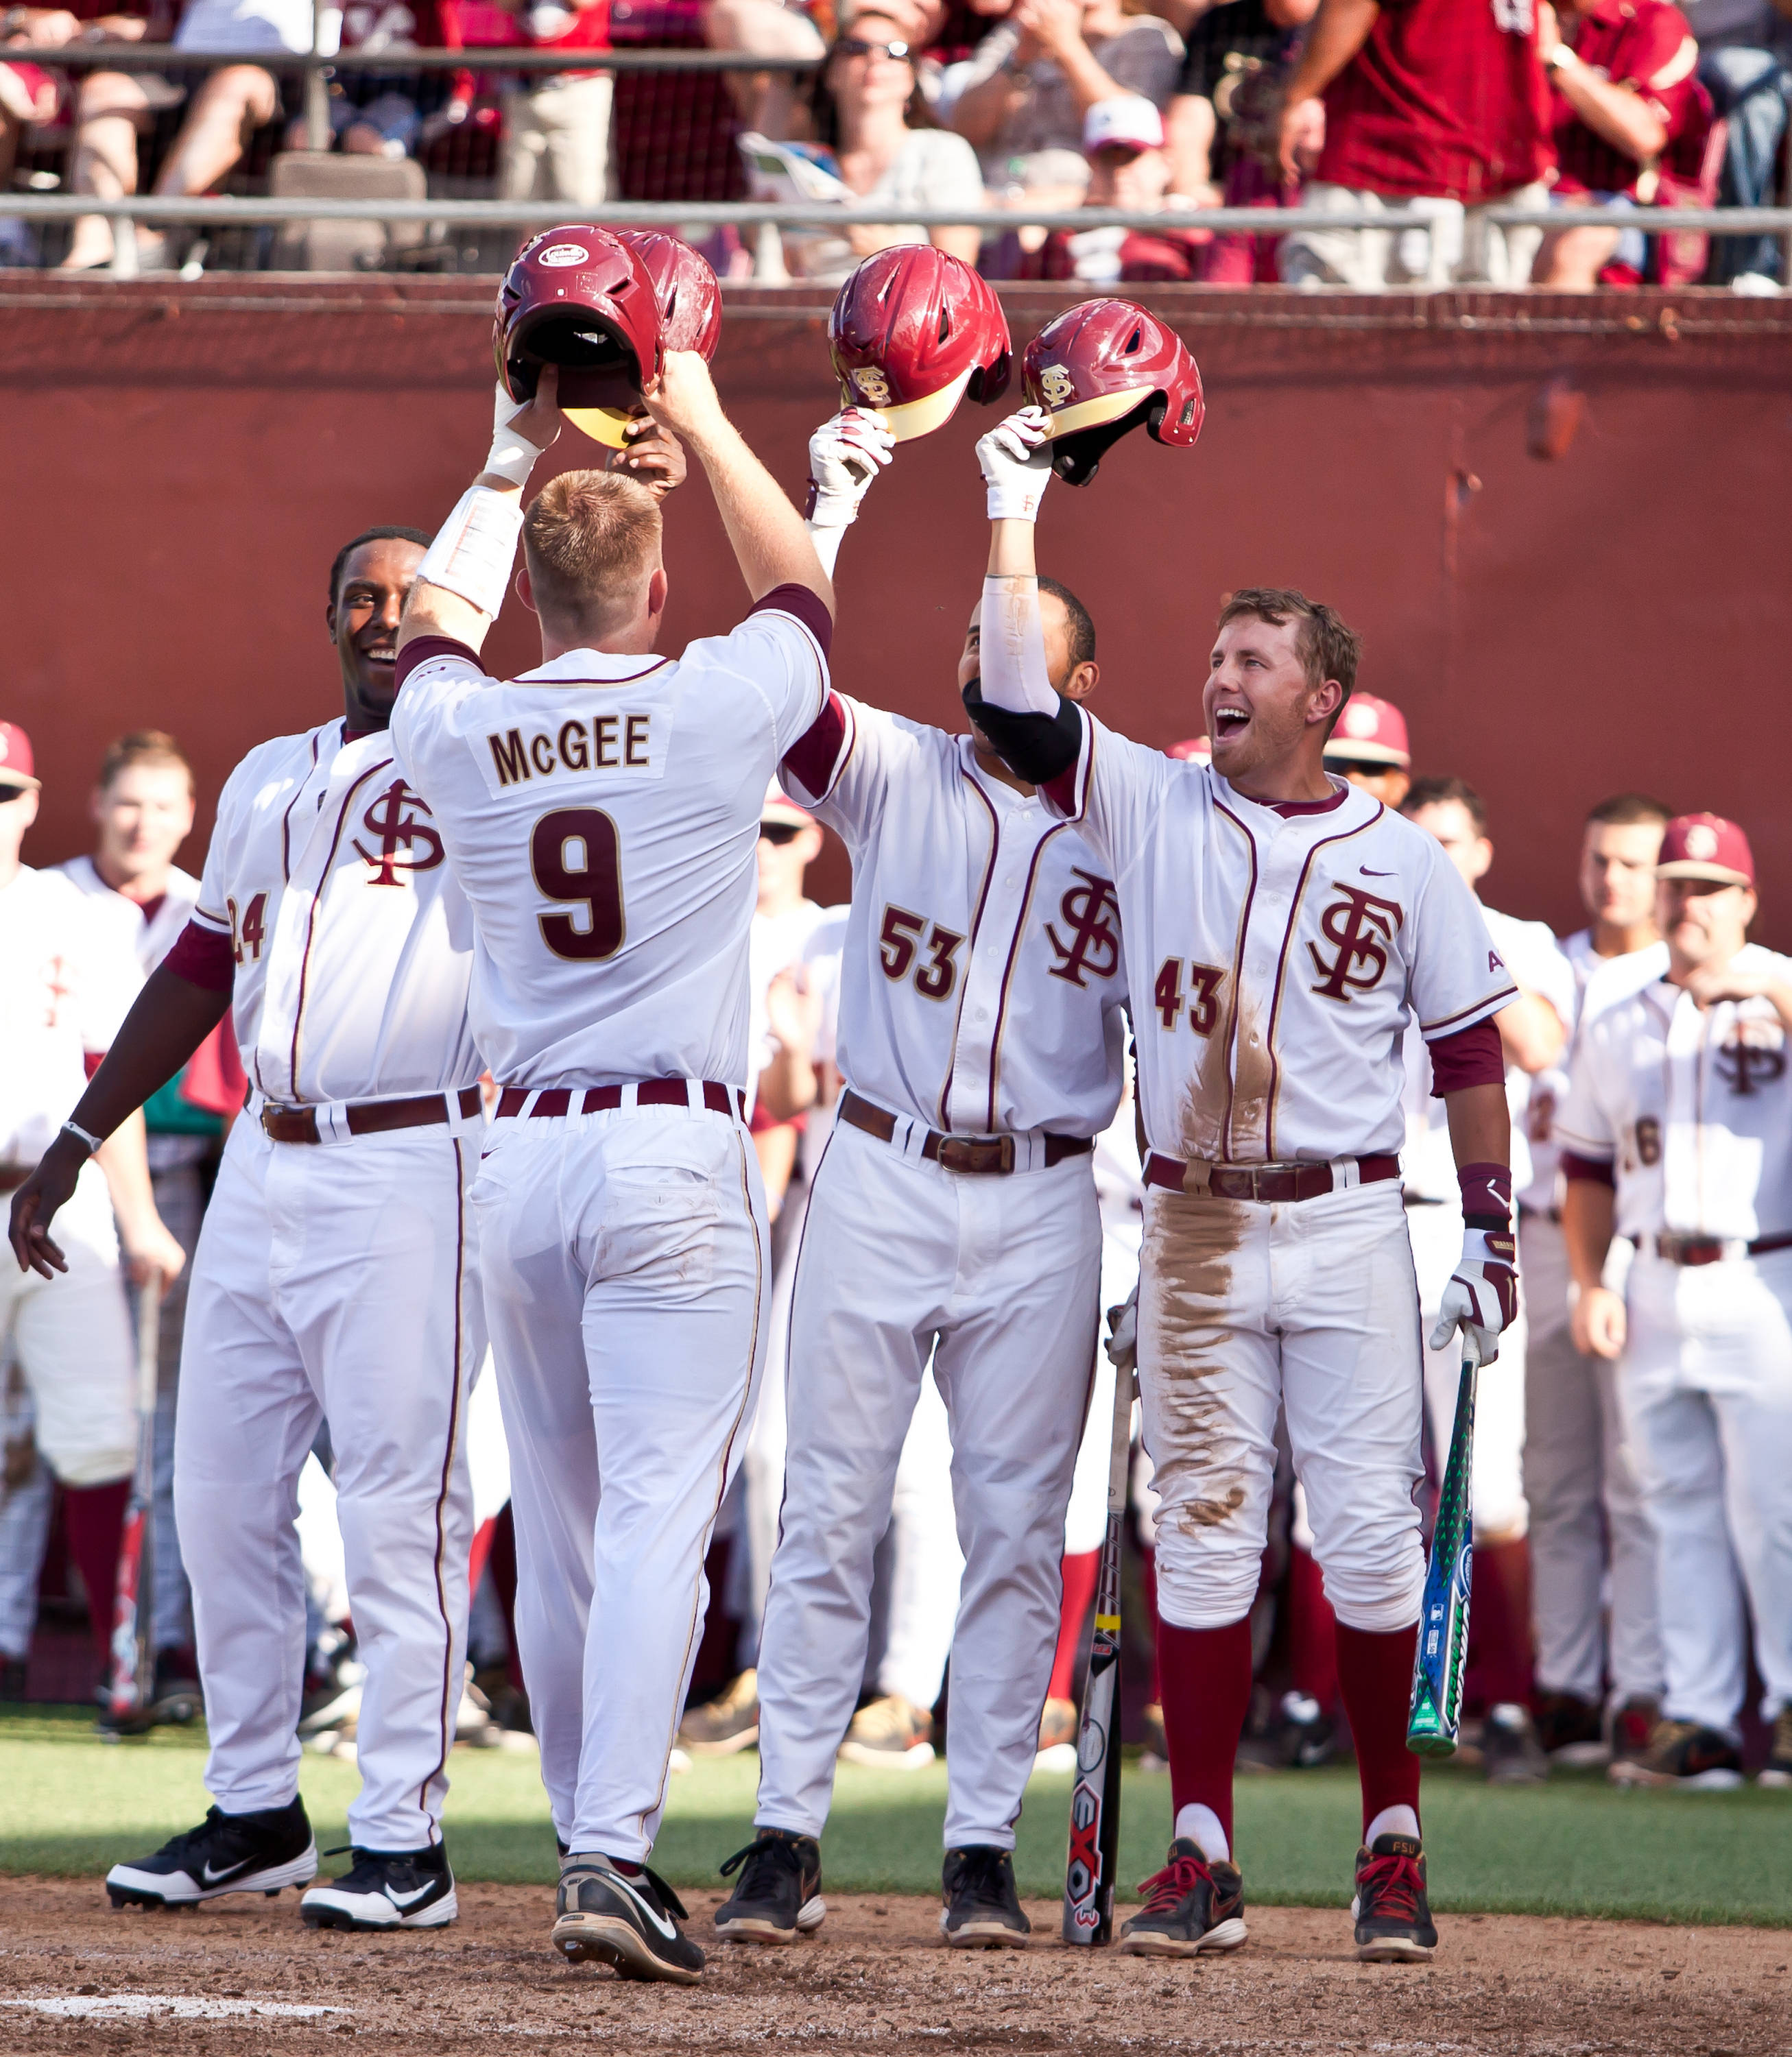 The Seminoles greet Stephen McGe at home plate after connecting on a home run.